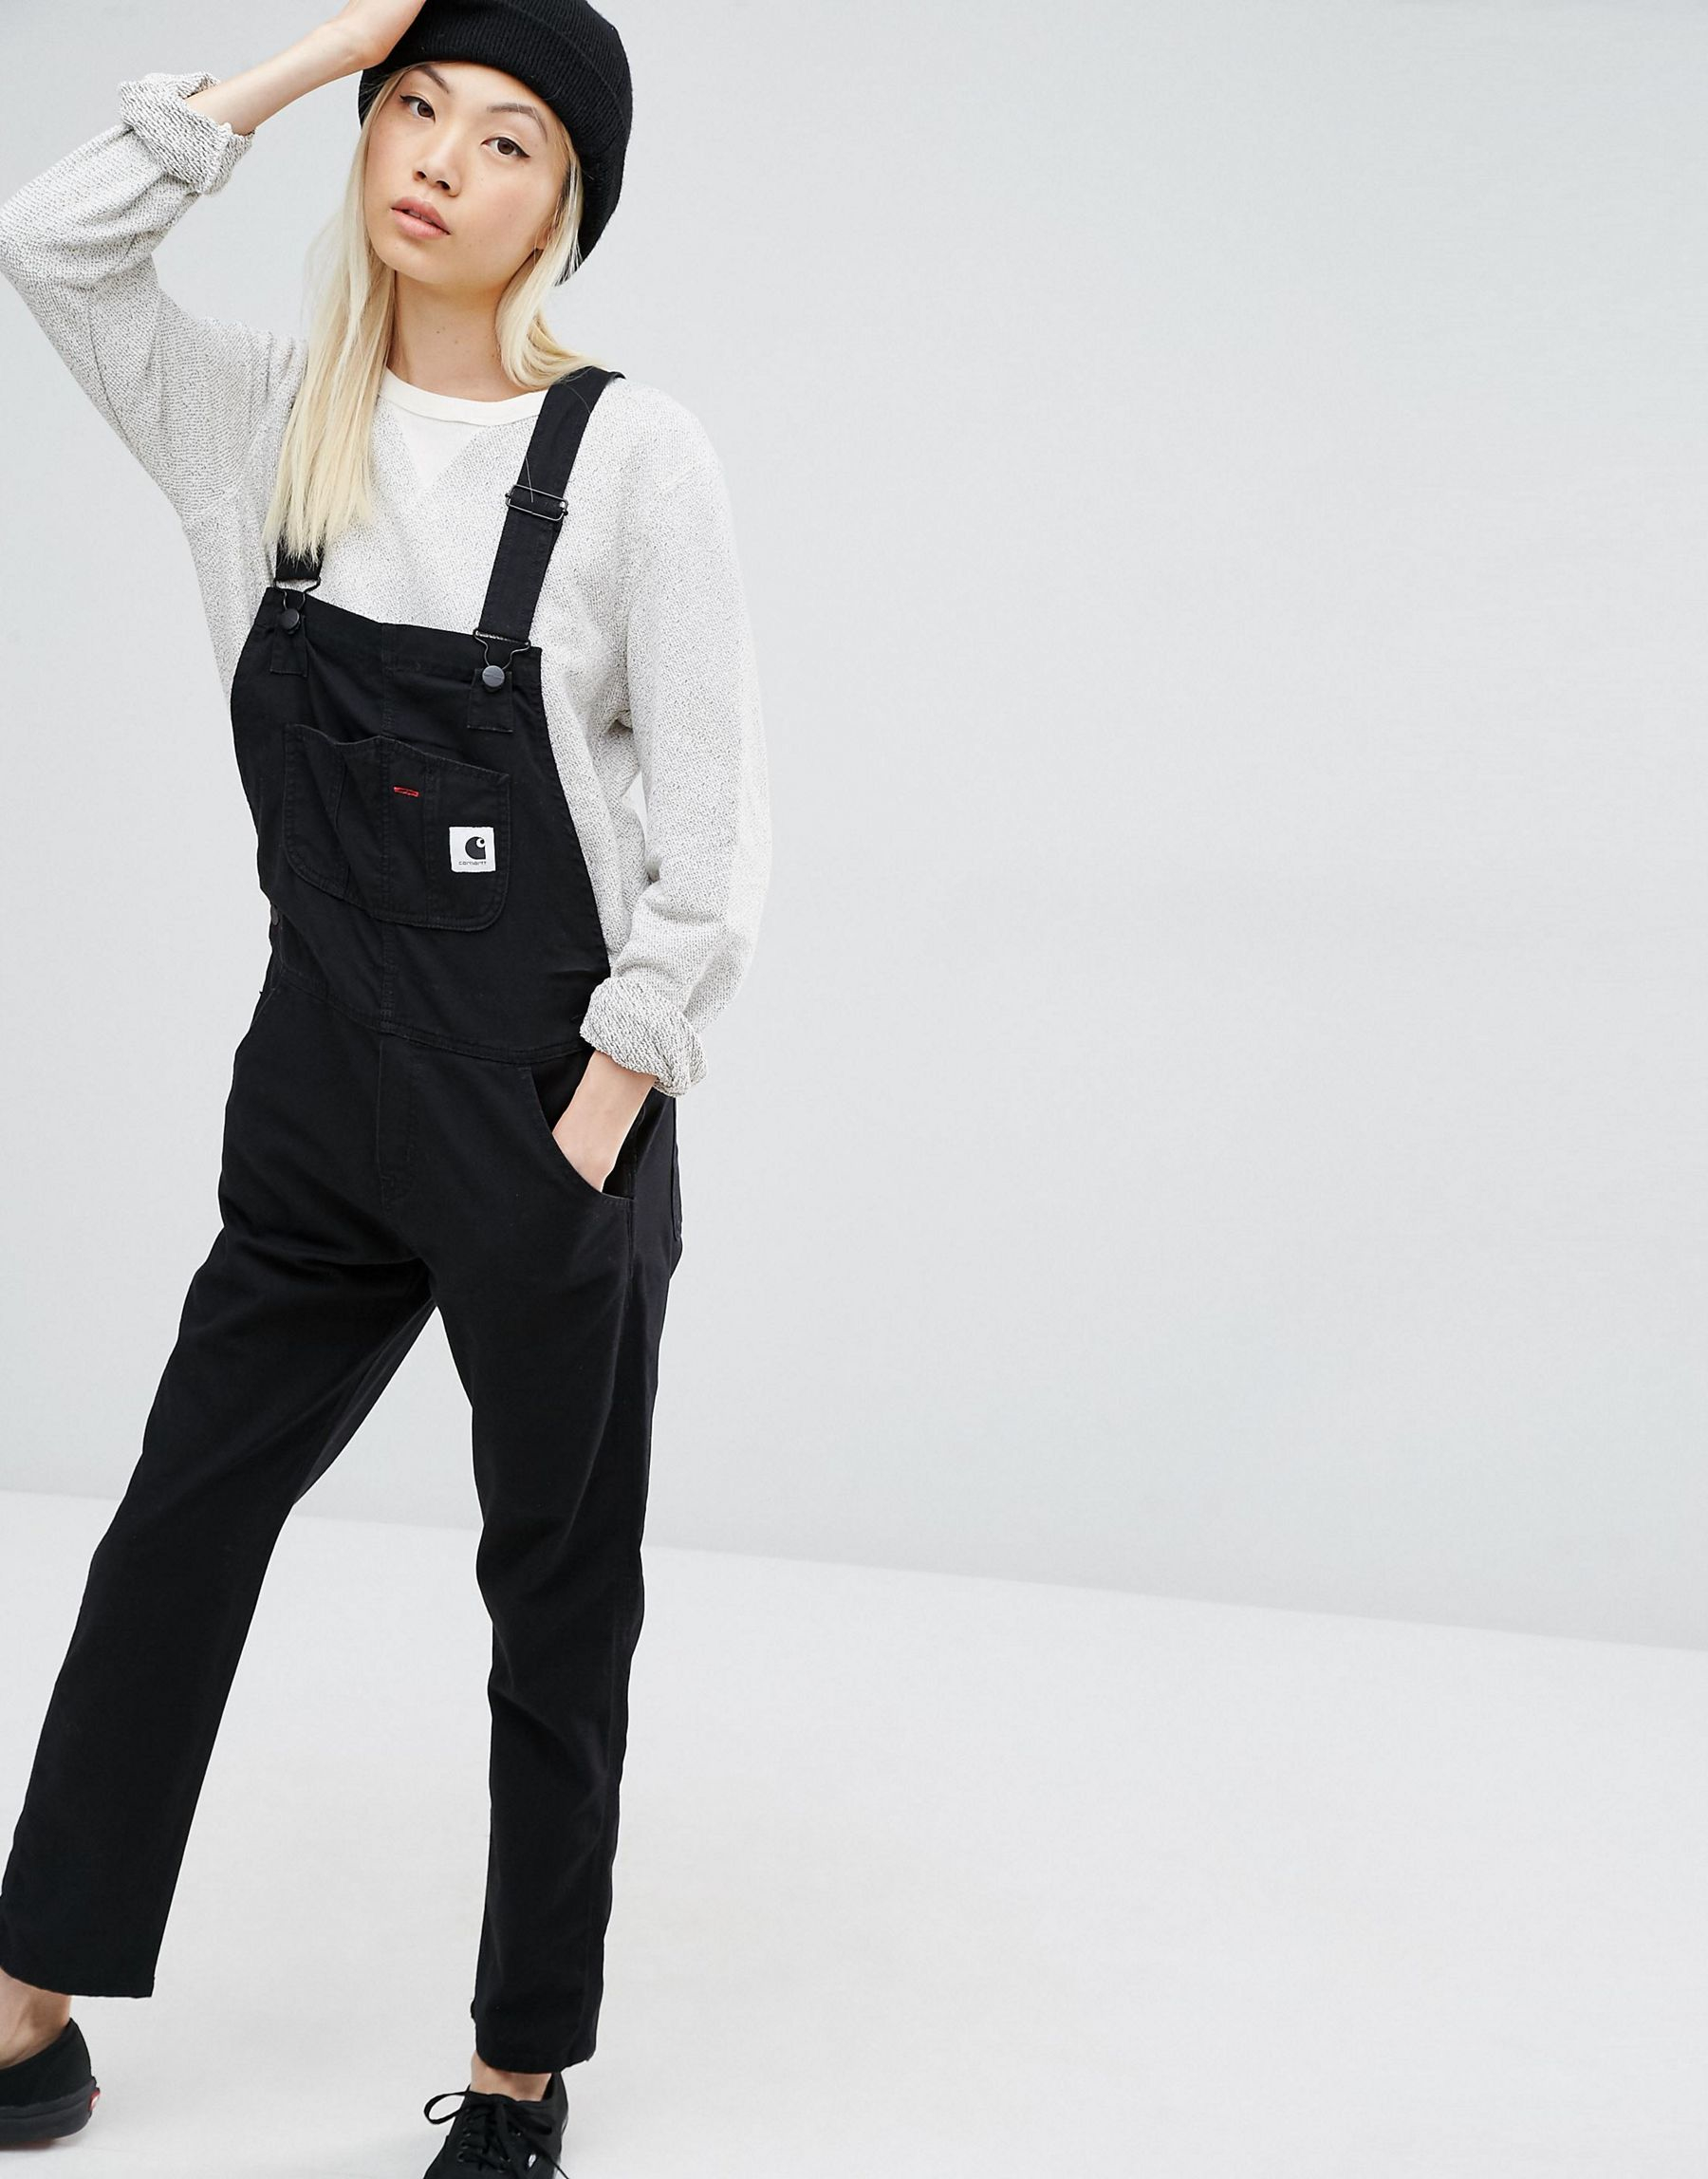 e15a20ef3c2 Lyst - Carhartt WIP Bib Overall Dungarees With Front Logo in Black